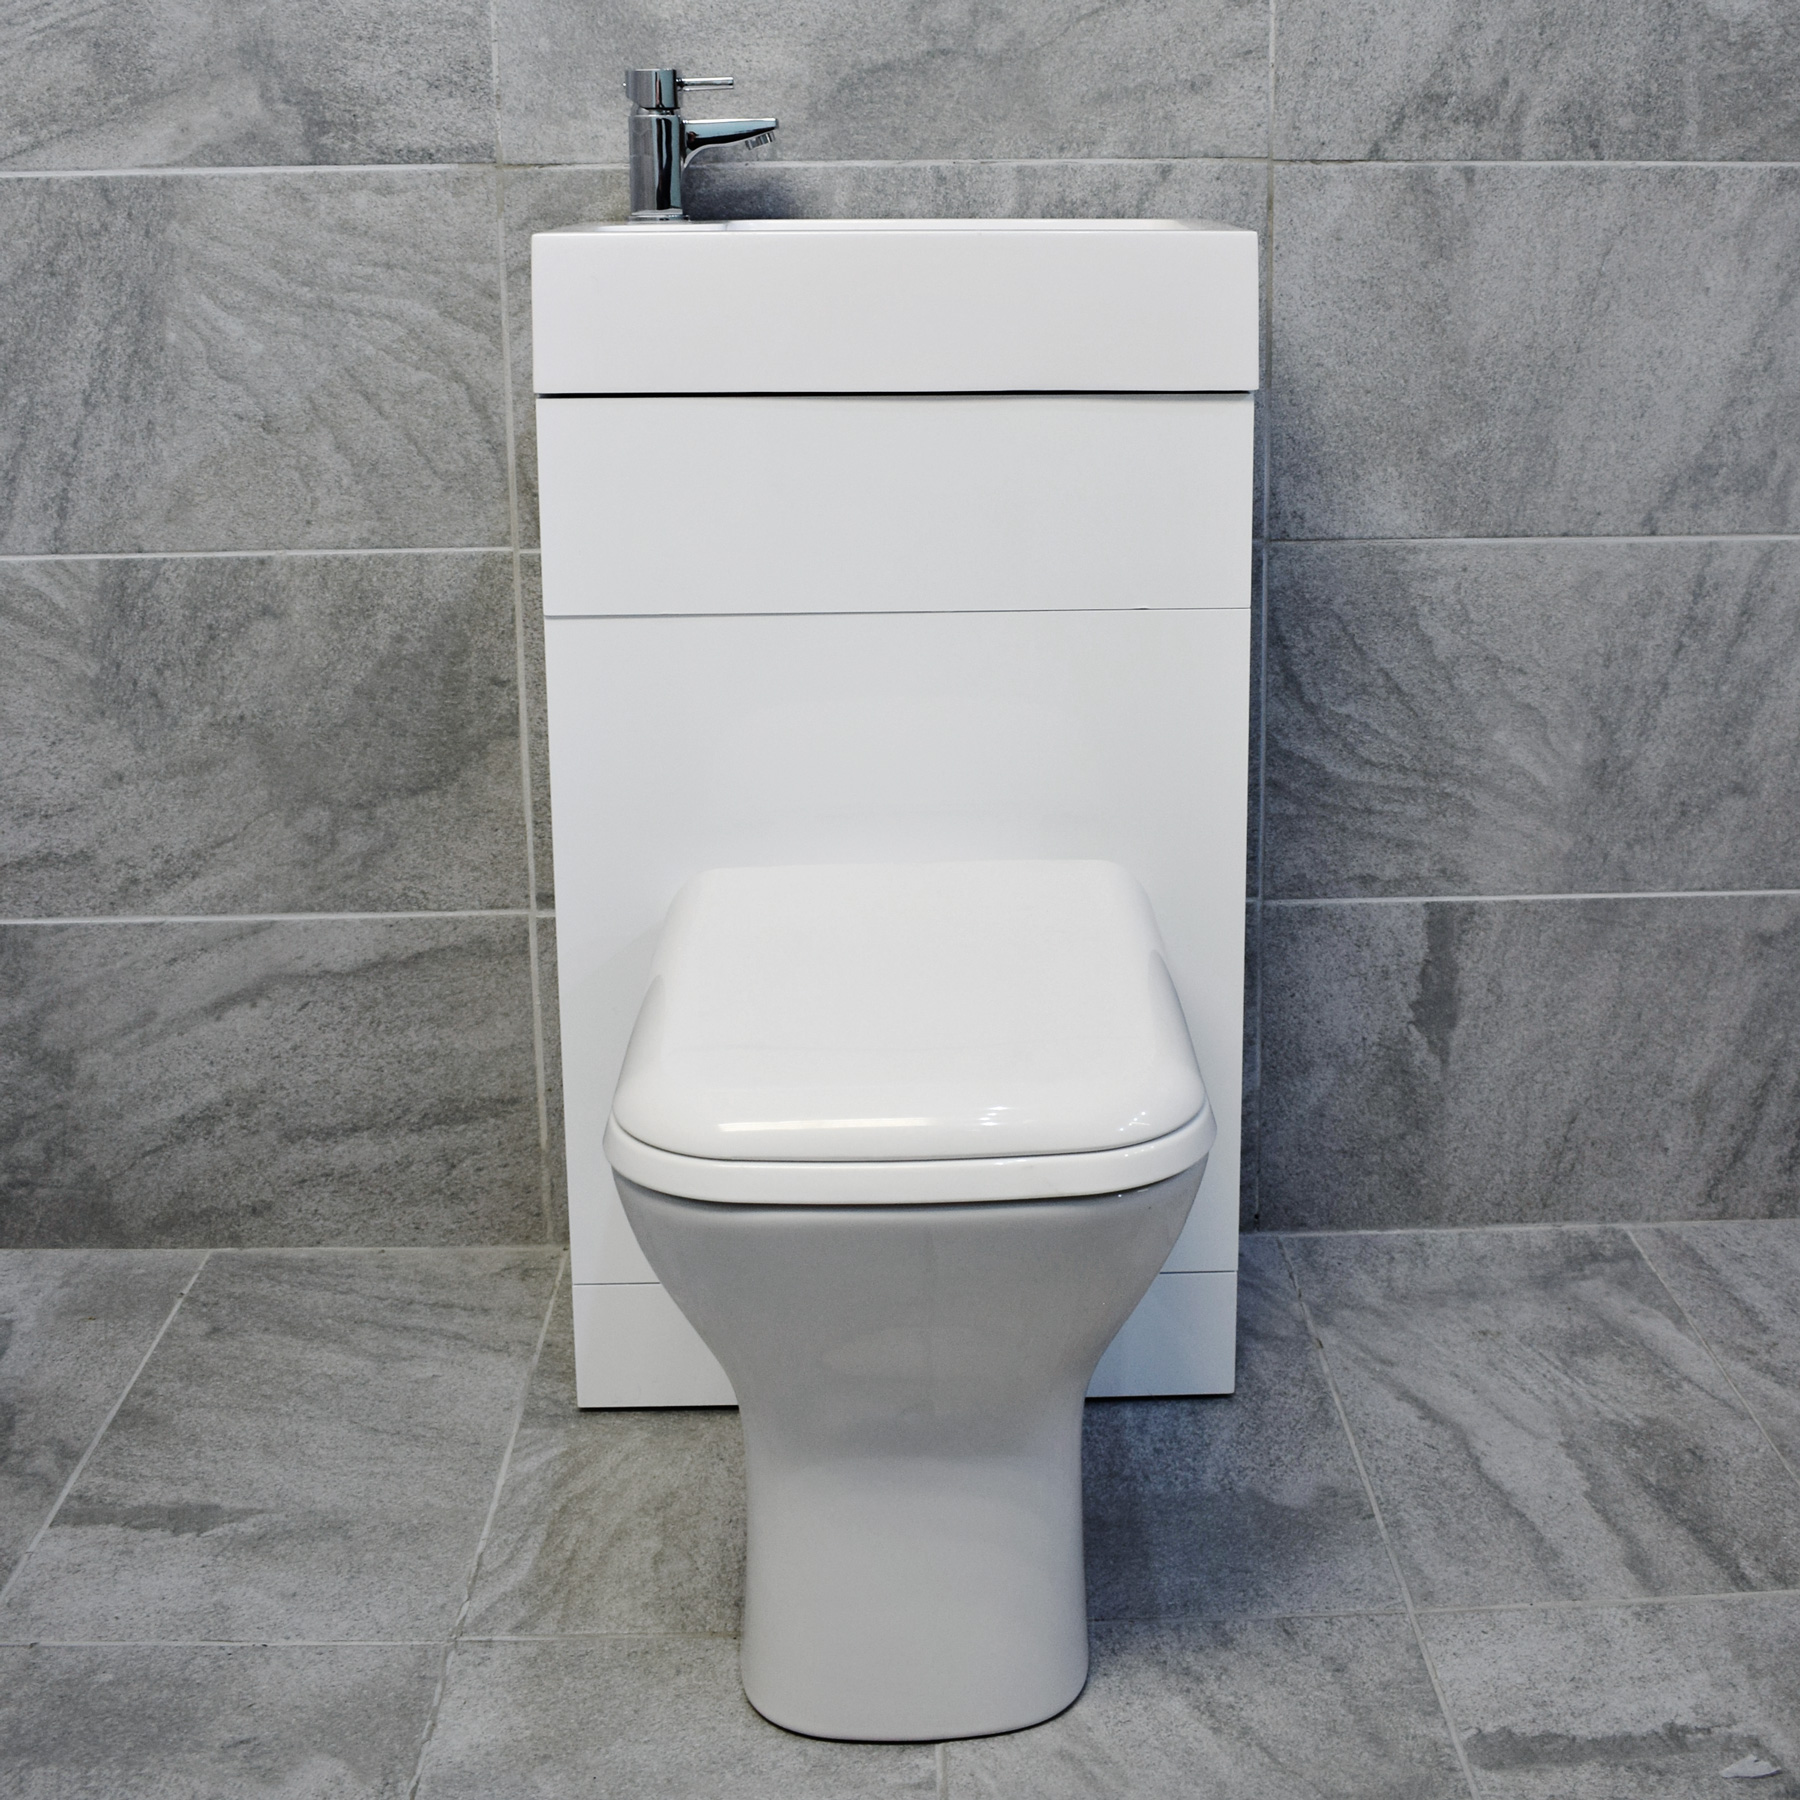 All In One Space Saving Toilet Sink Basin Combination